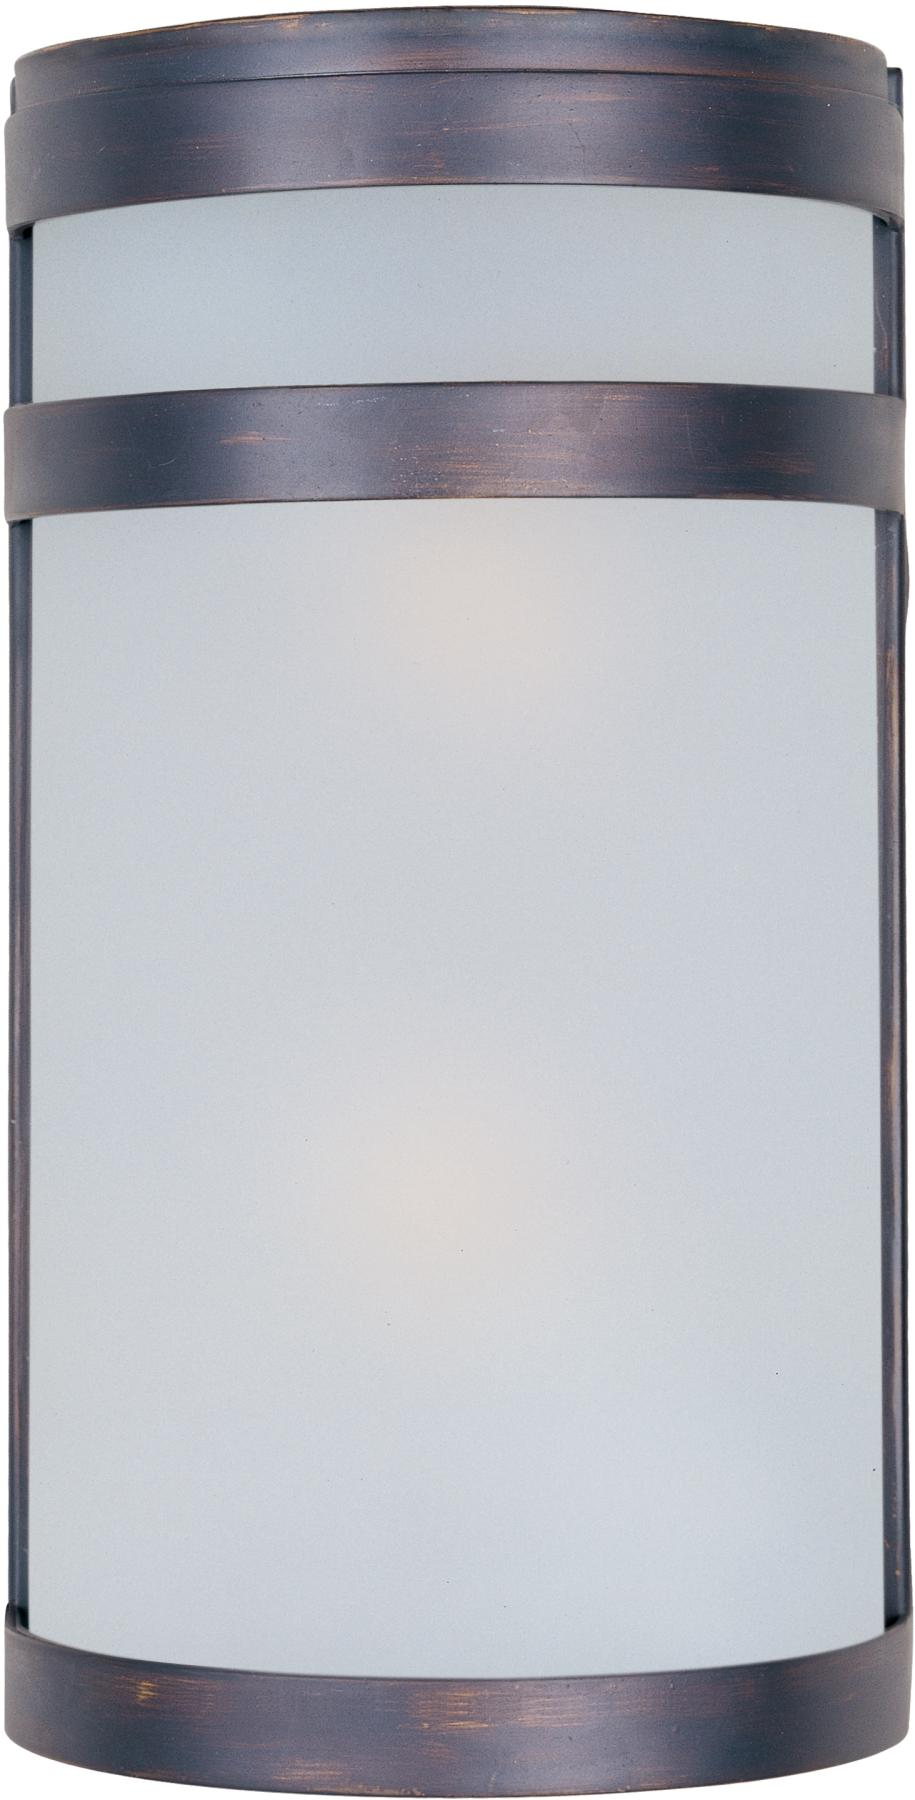 Maxim 5002FTOI Arc 2-Light Outdoor Wall Lantern in Oil Rubbed Bronze with Frosted glass.